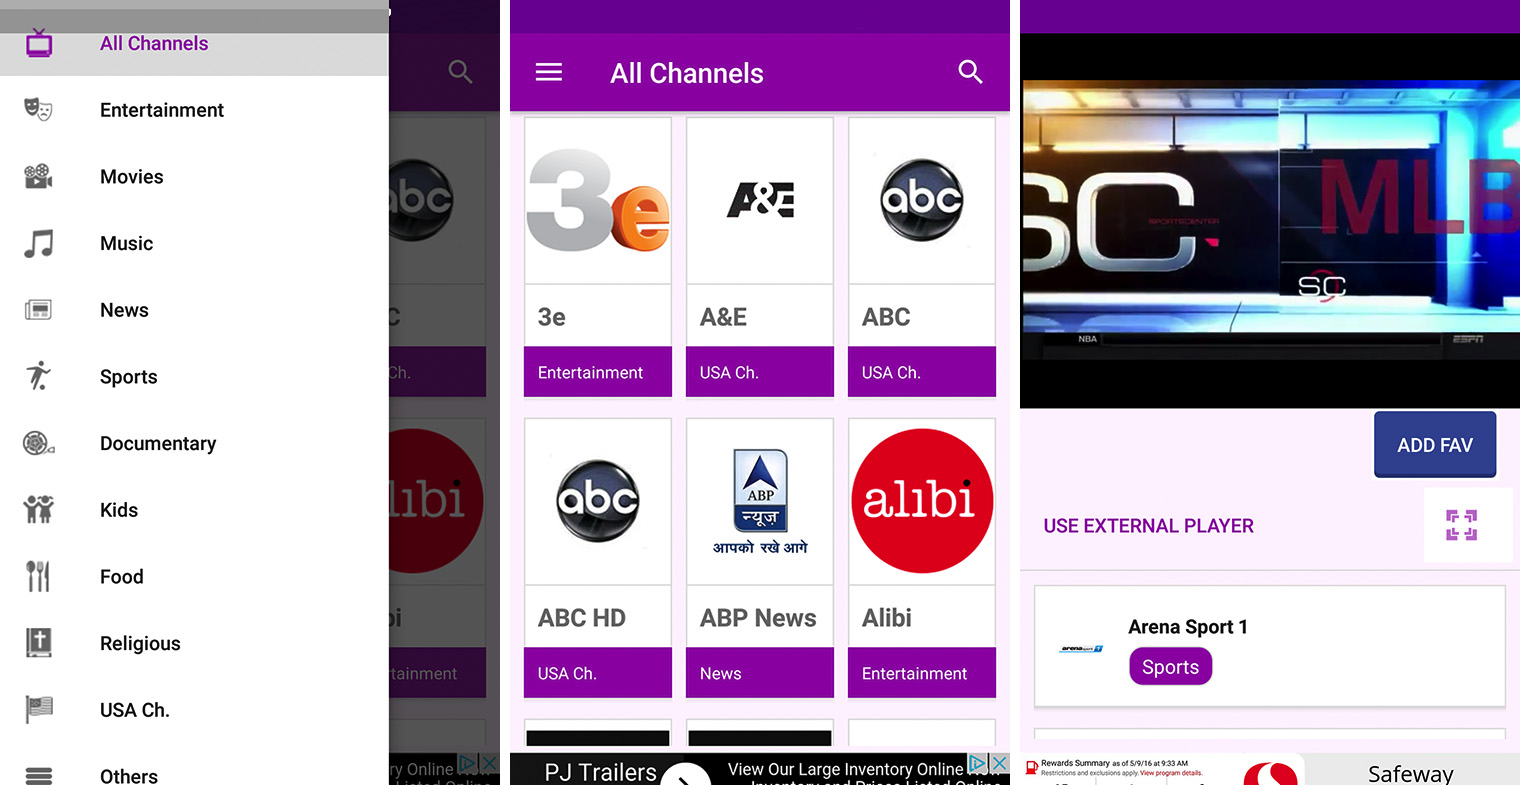 download uk tv now apk 2018 - freeiptv365 Best APK APPS AND